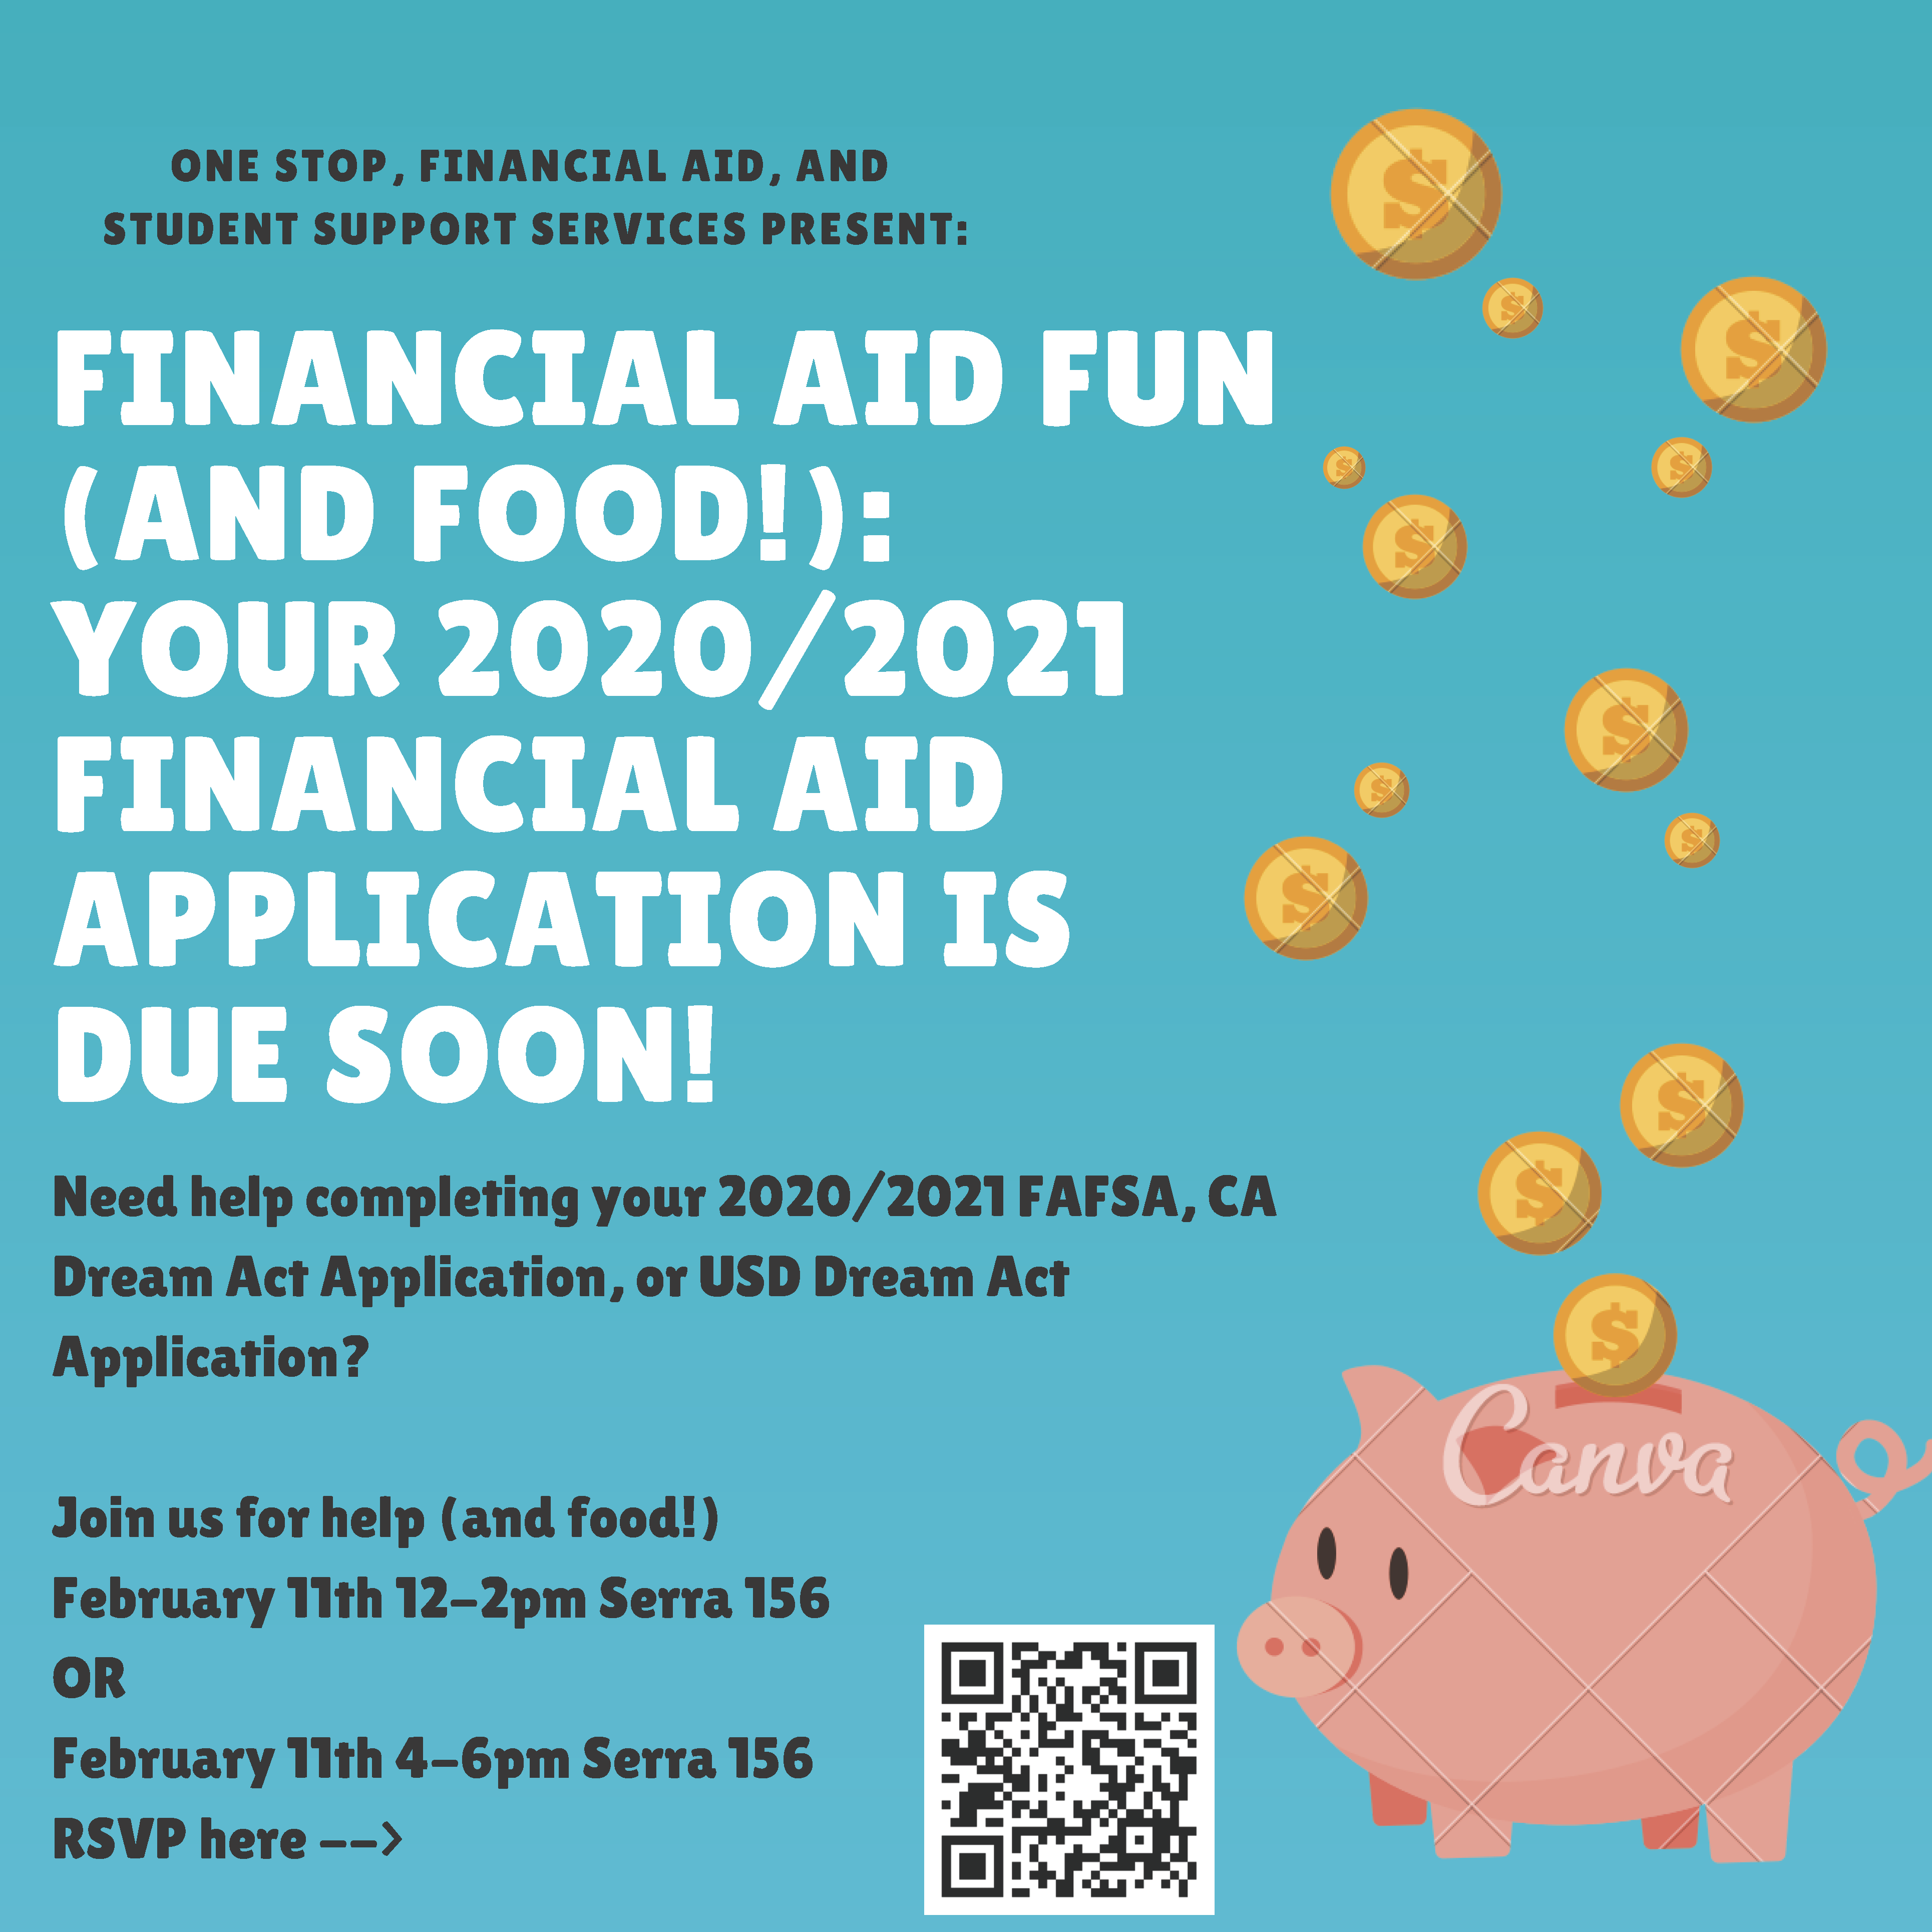 Financial Aid Fun (and Food!): Your 2020/2021 Financial Aid Application is due soon!